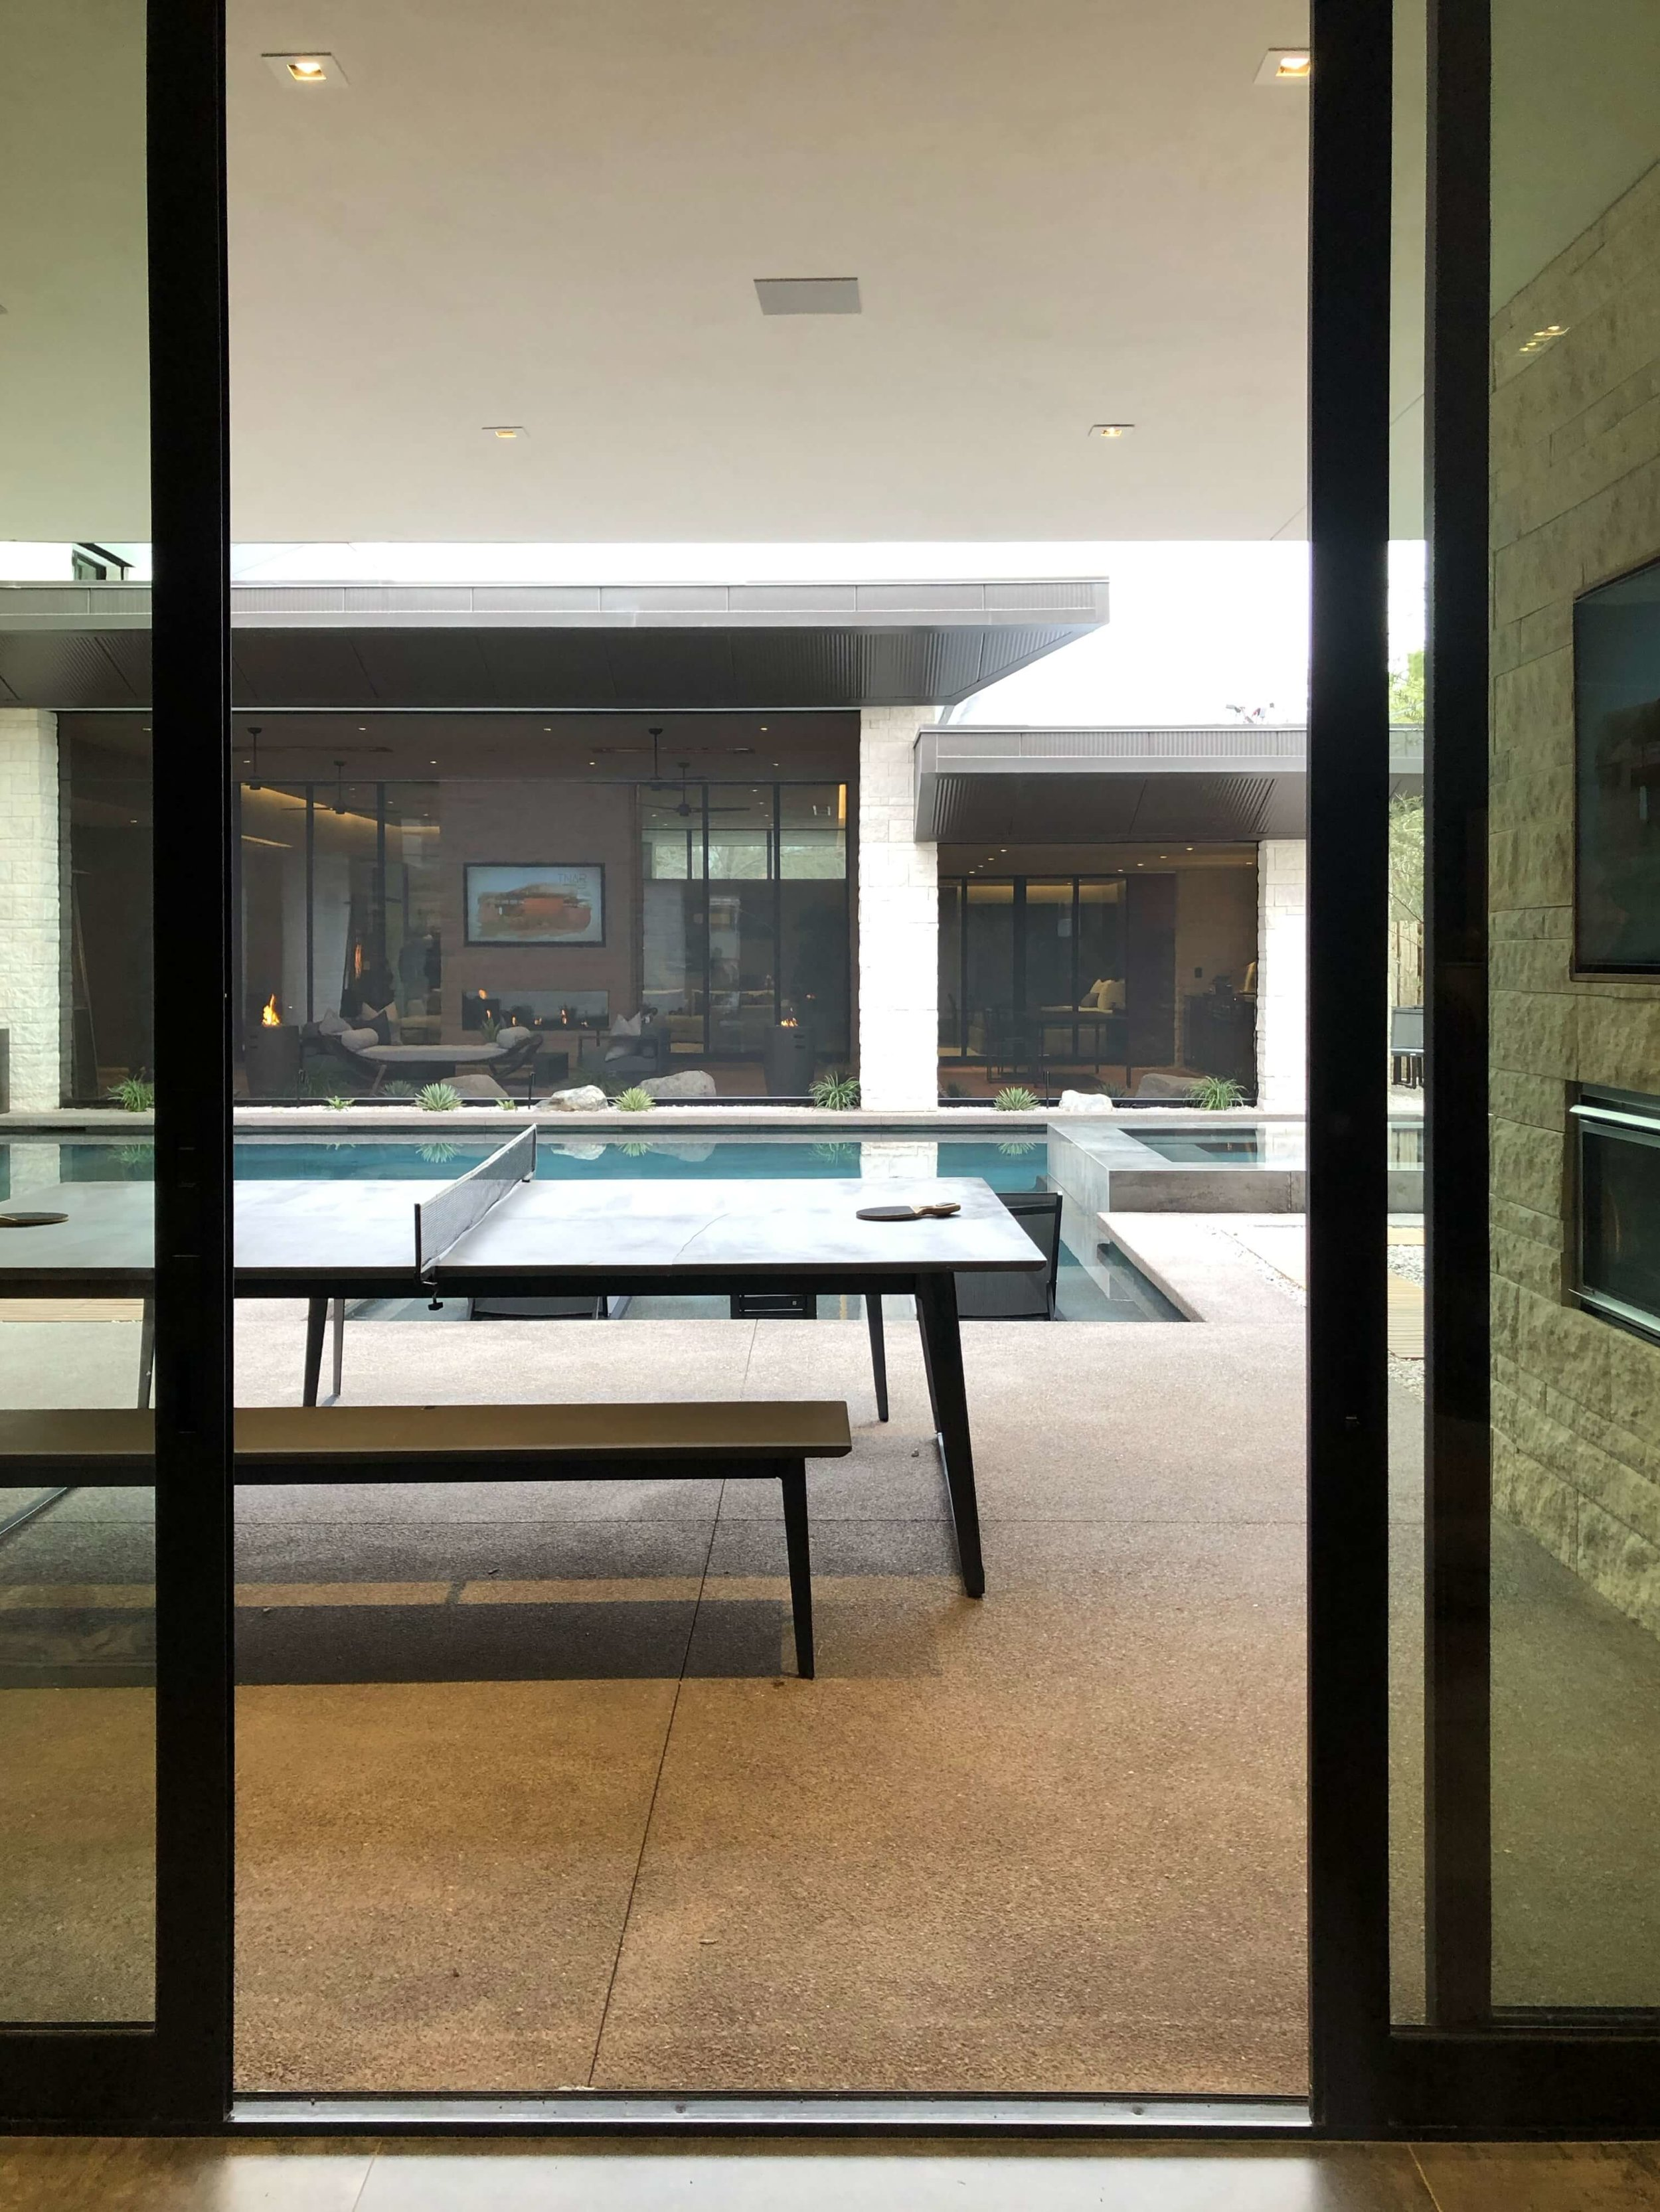 Ping pong table area by the pool with outdoor fireplace and tv in The New American Remodel 2019. #gameroom #outdoorliving #hometour #contemporaryhome